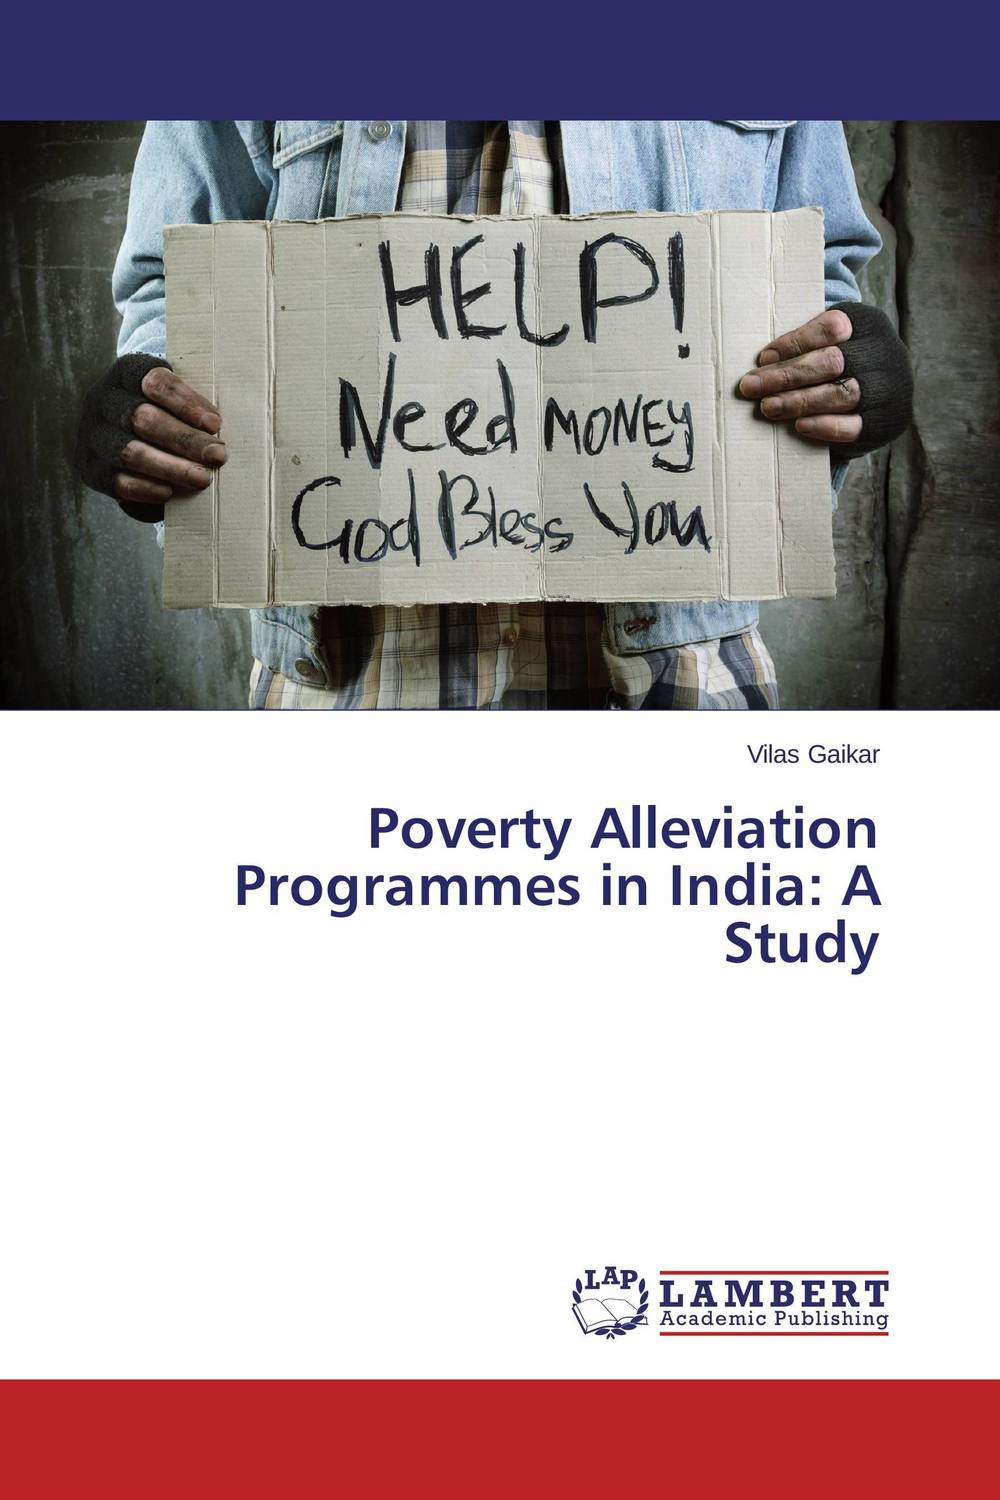 Poverty Alleviation Programmes in India: A Study review of genus cotugnia diamare from maharashtra